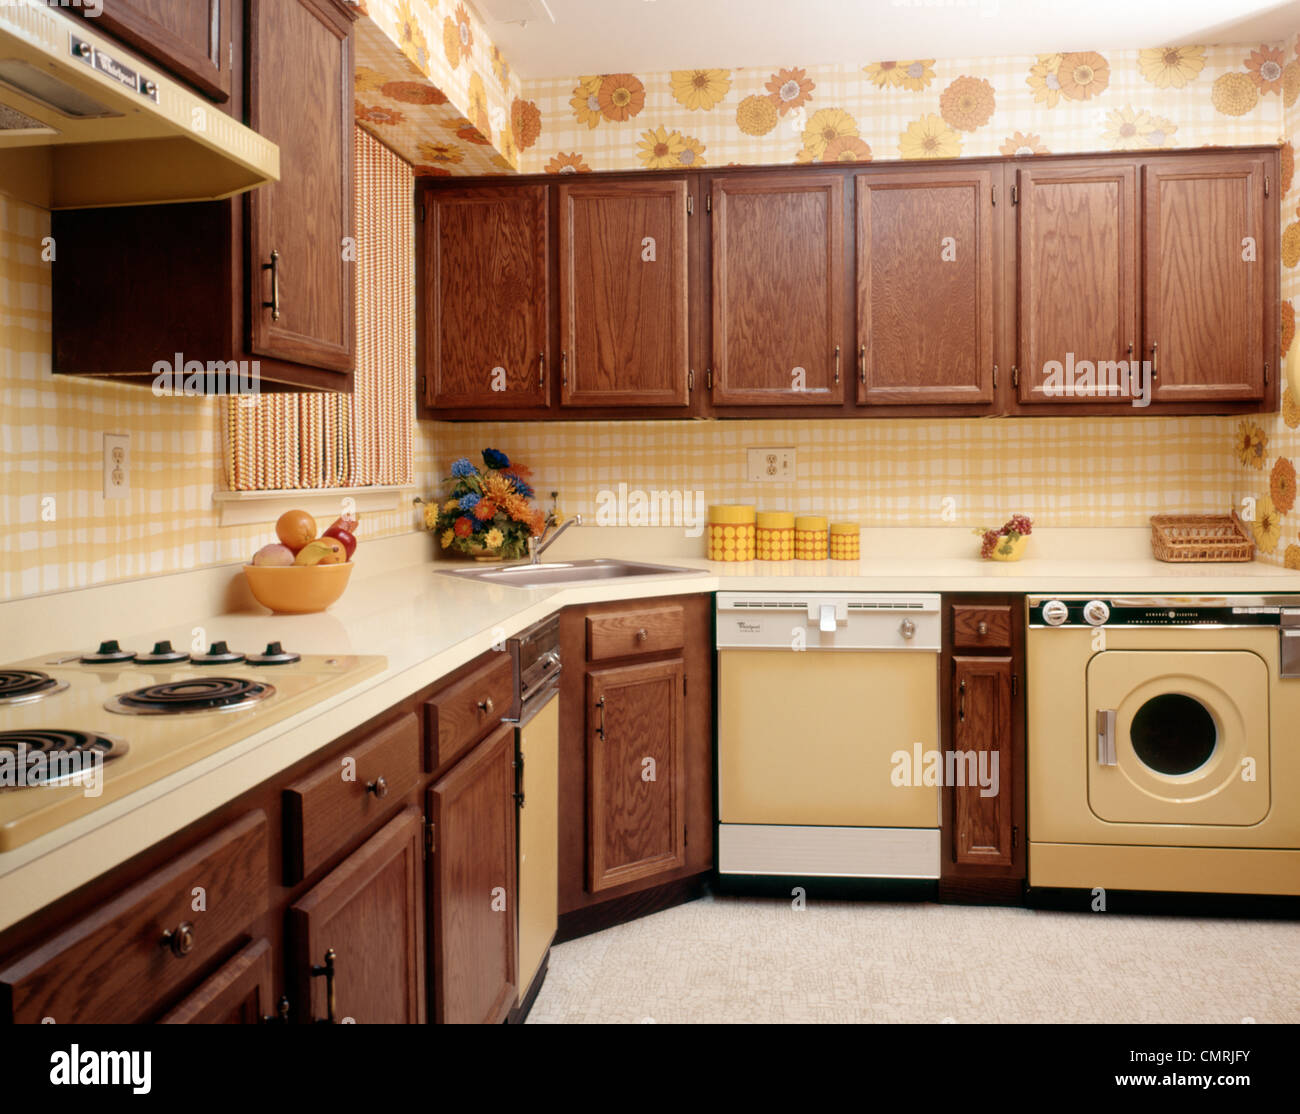 1970s KITCHEN INTERIOR WITH YELLOW APPLIANCES WOOD CABINETS ...